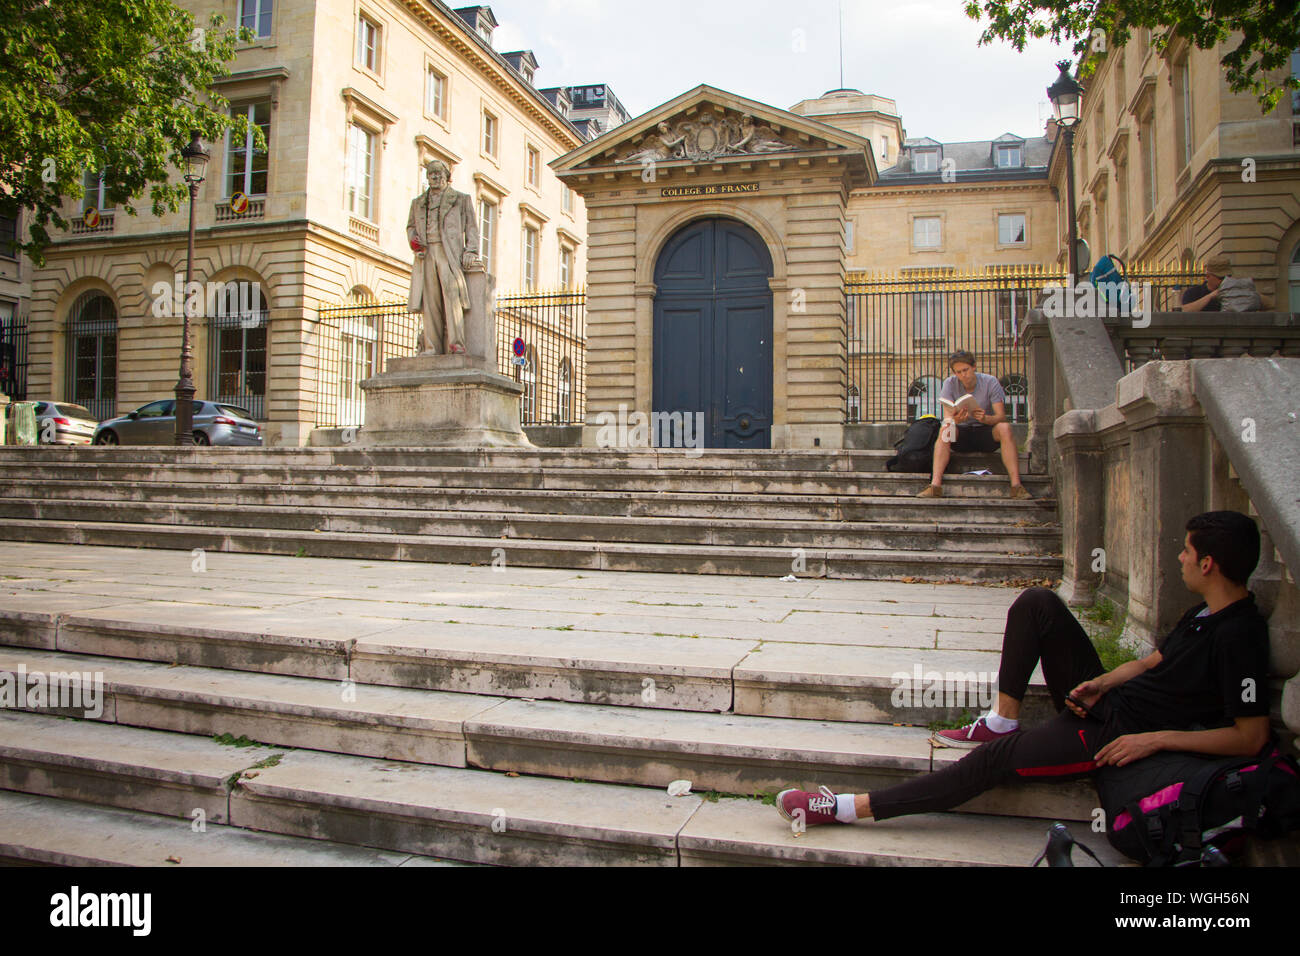 Paris, France - July 7, 2019: Claude Bernard statue in front of the main entrance to the College de France in Paris Stock Photo